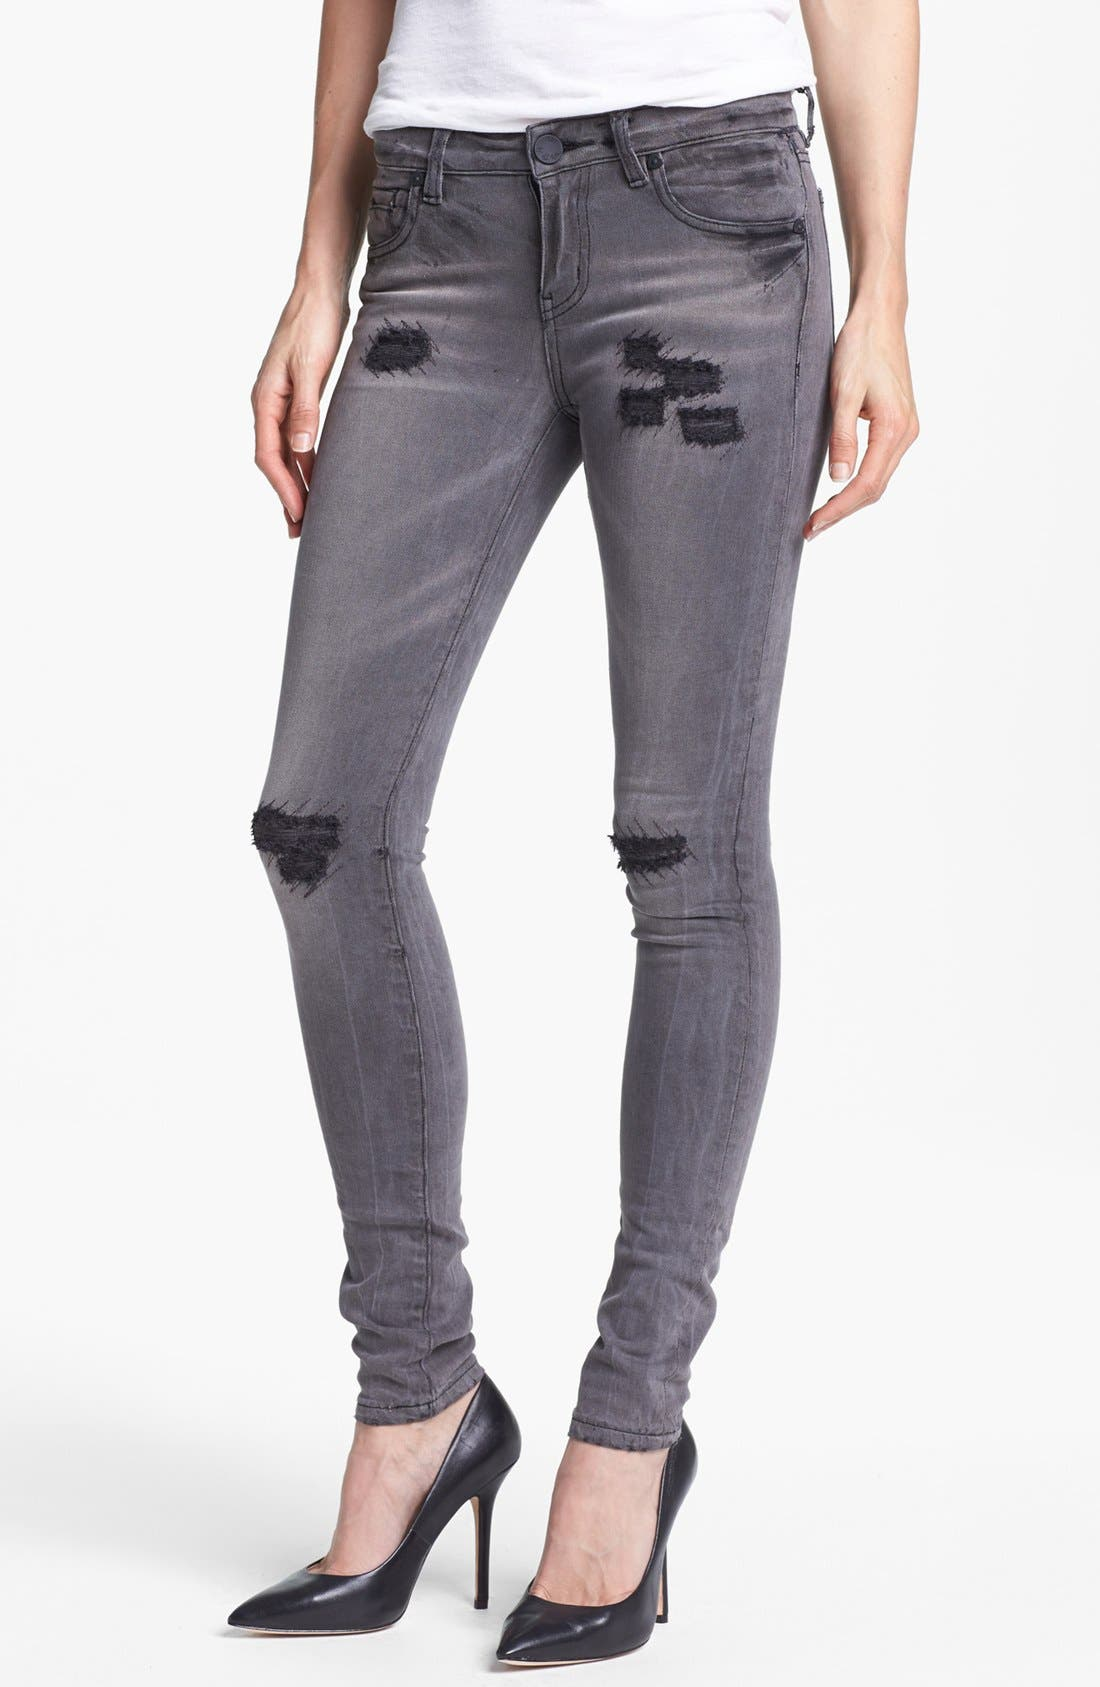 Main Image - KUT from the Kloth 'Mia' Stretch Skinny Jeans (Simulating)